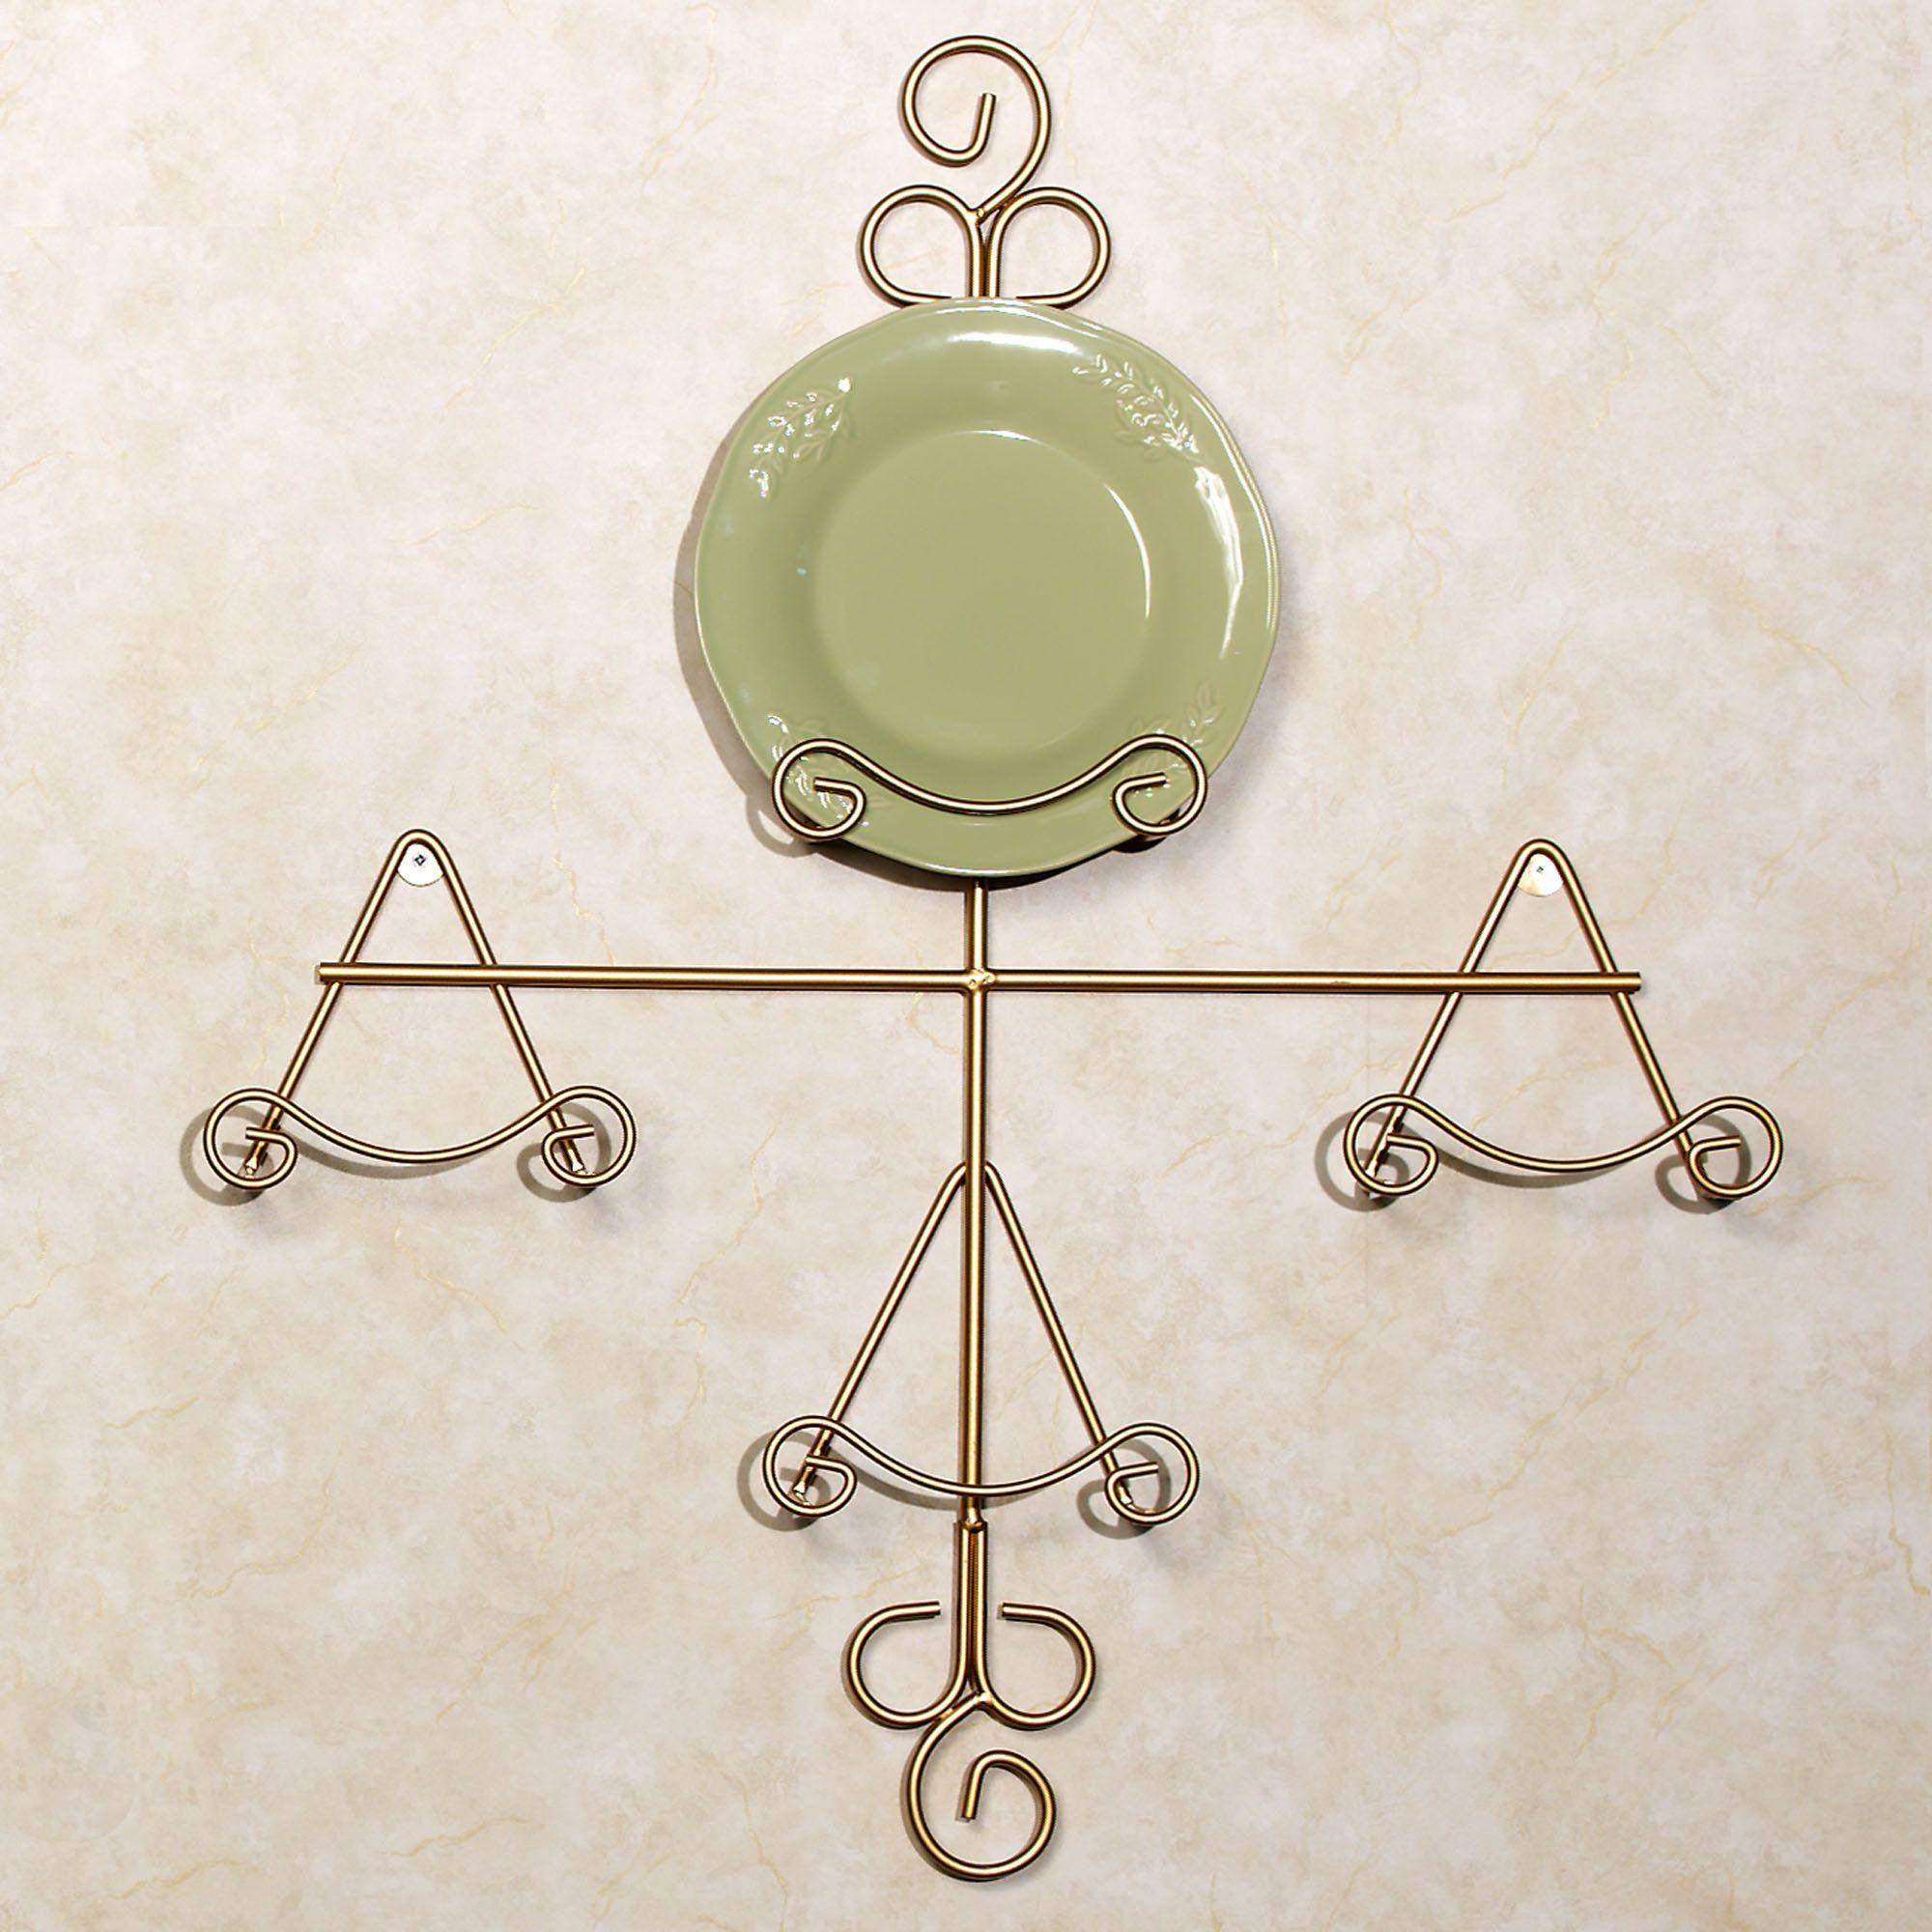 or perhaps this one... Jubilee Plate Rack Gold 40 Plate